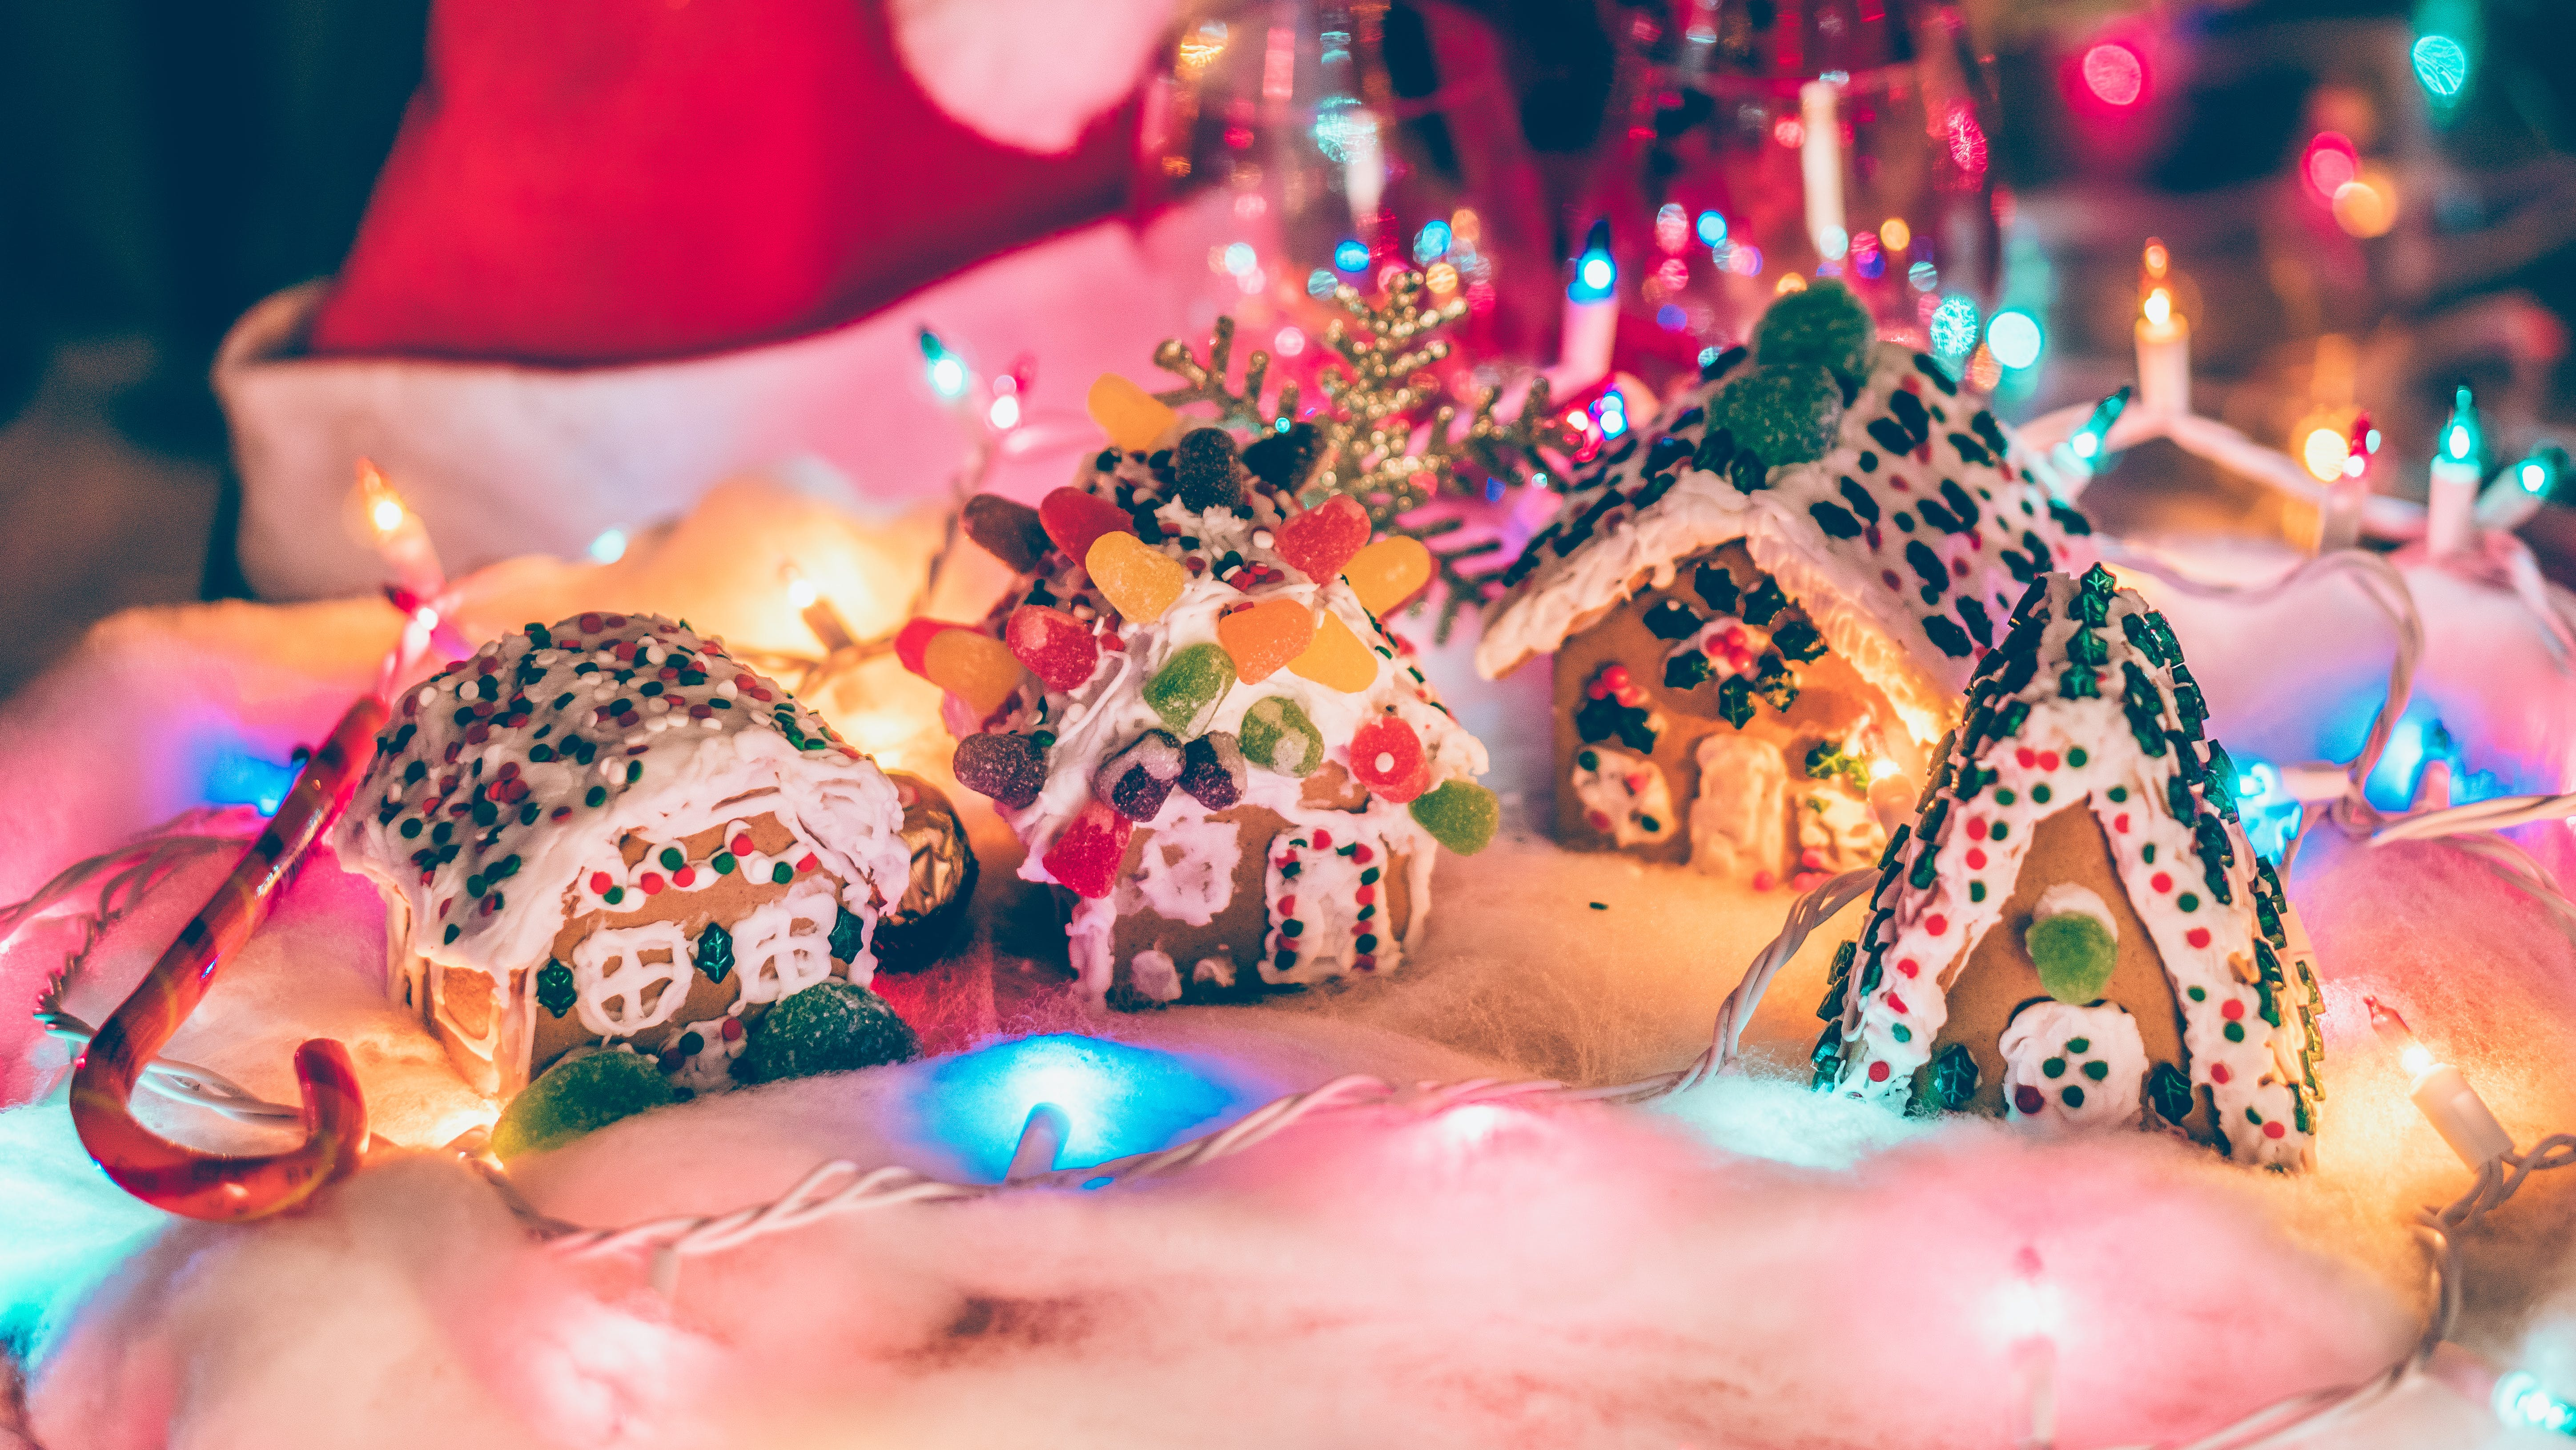 Free stock photo of deco, gingerbread, gingerbread house, lights